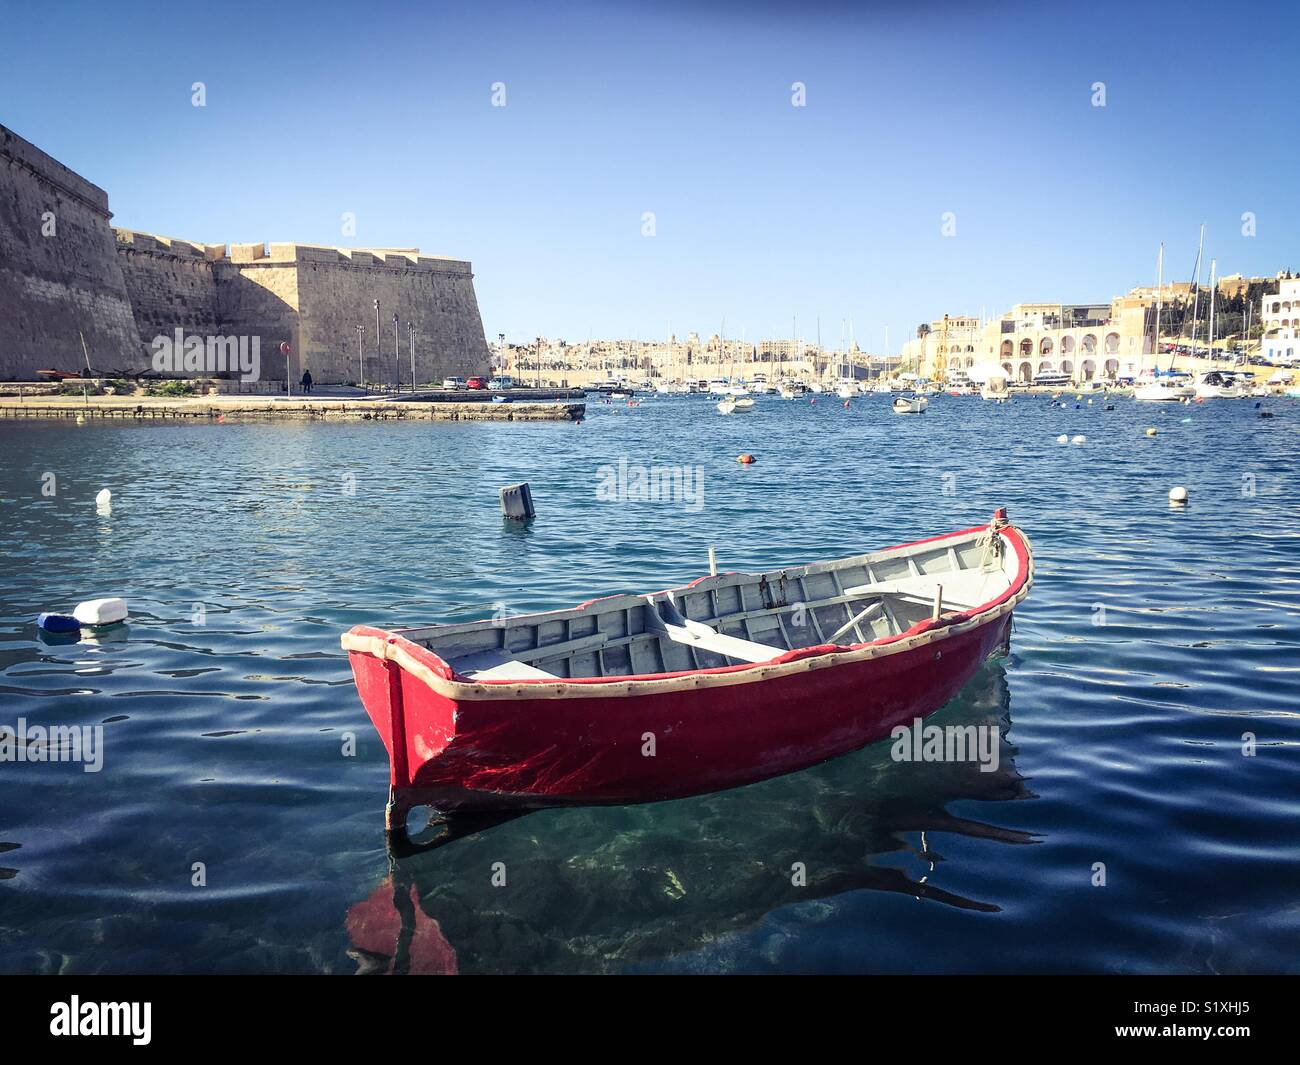 Small red wooden fishing boat in the bay, Kalkara, Malta - Stock Image